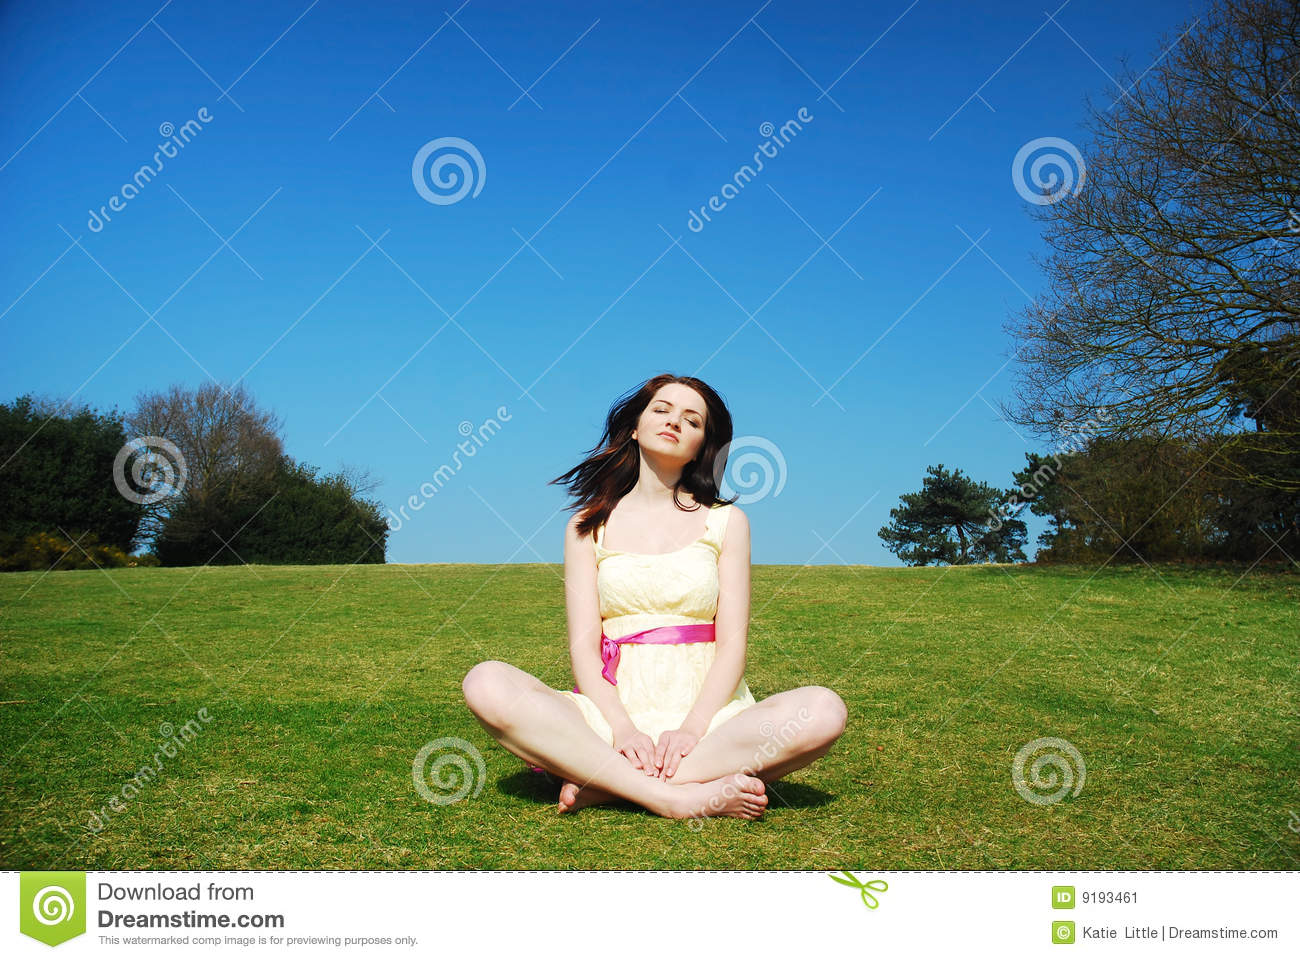 Serene Woman In Field Stock Image - Image: 9193461